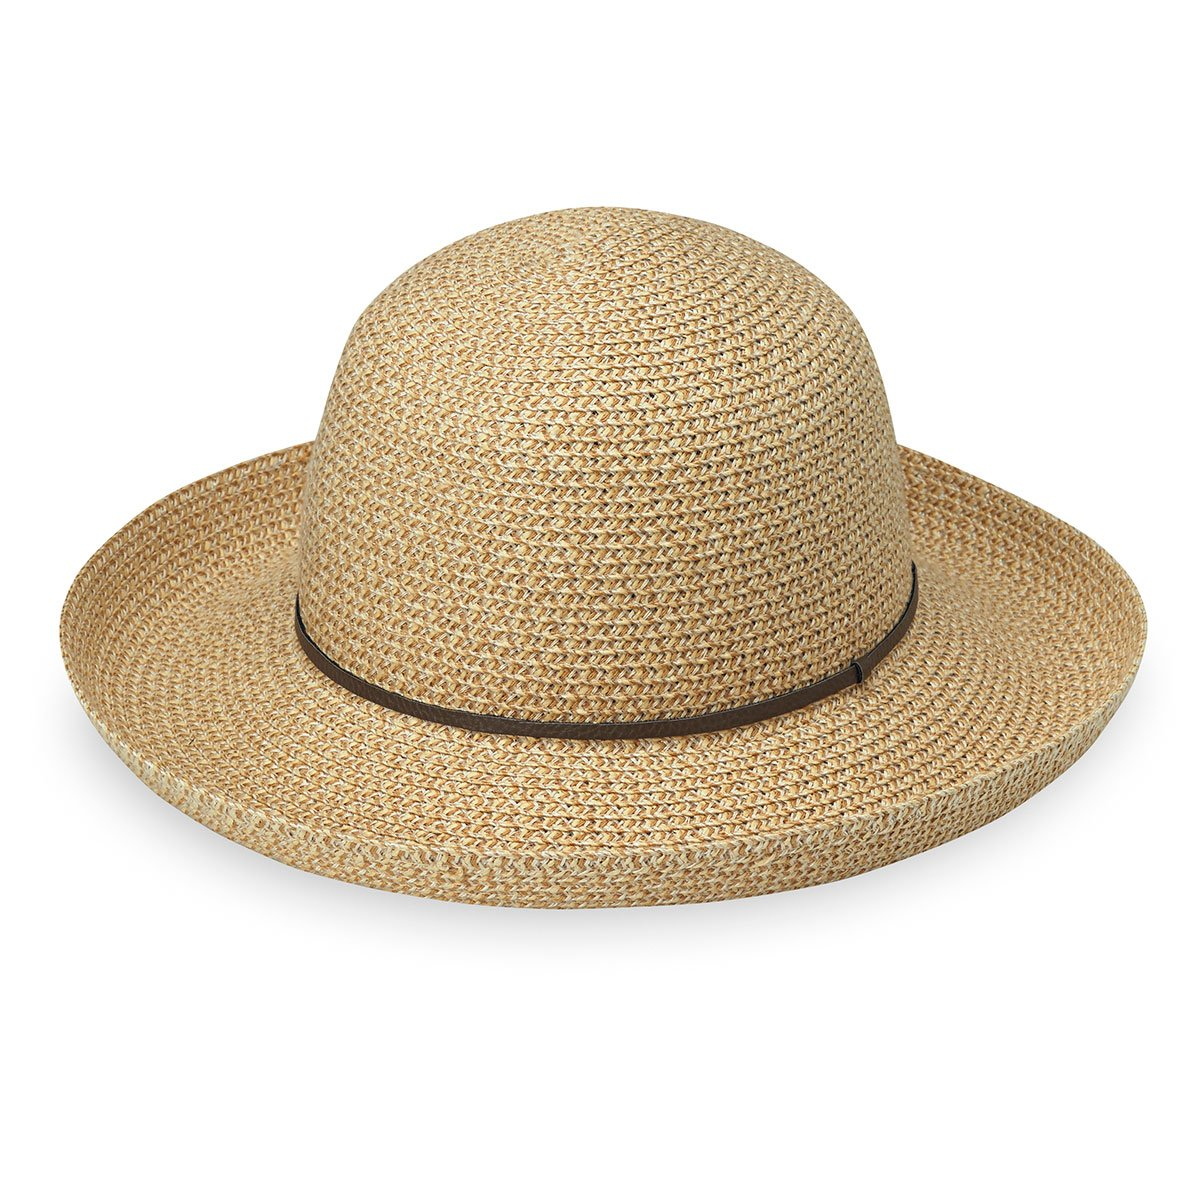 Wallaroo Hat Company Women's Amelia Sun Hat - UPF 50+, Lightweight, Packable, Modern Style, Designed in Australia, Natural by Wallaroo Hat Company (Image #1)